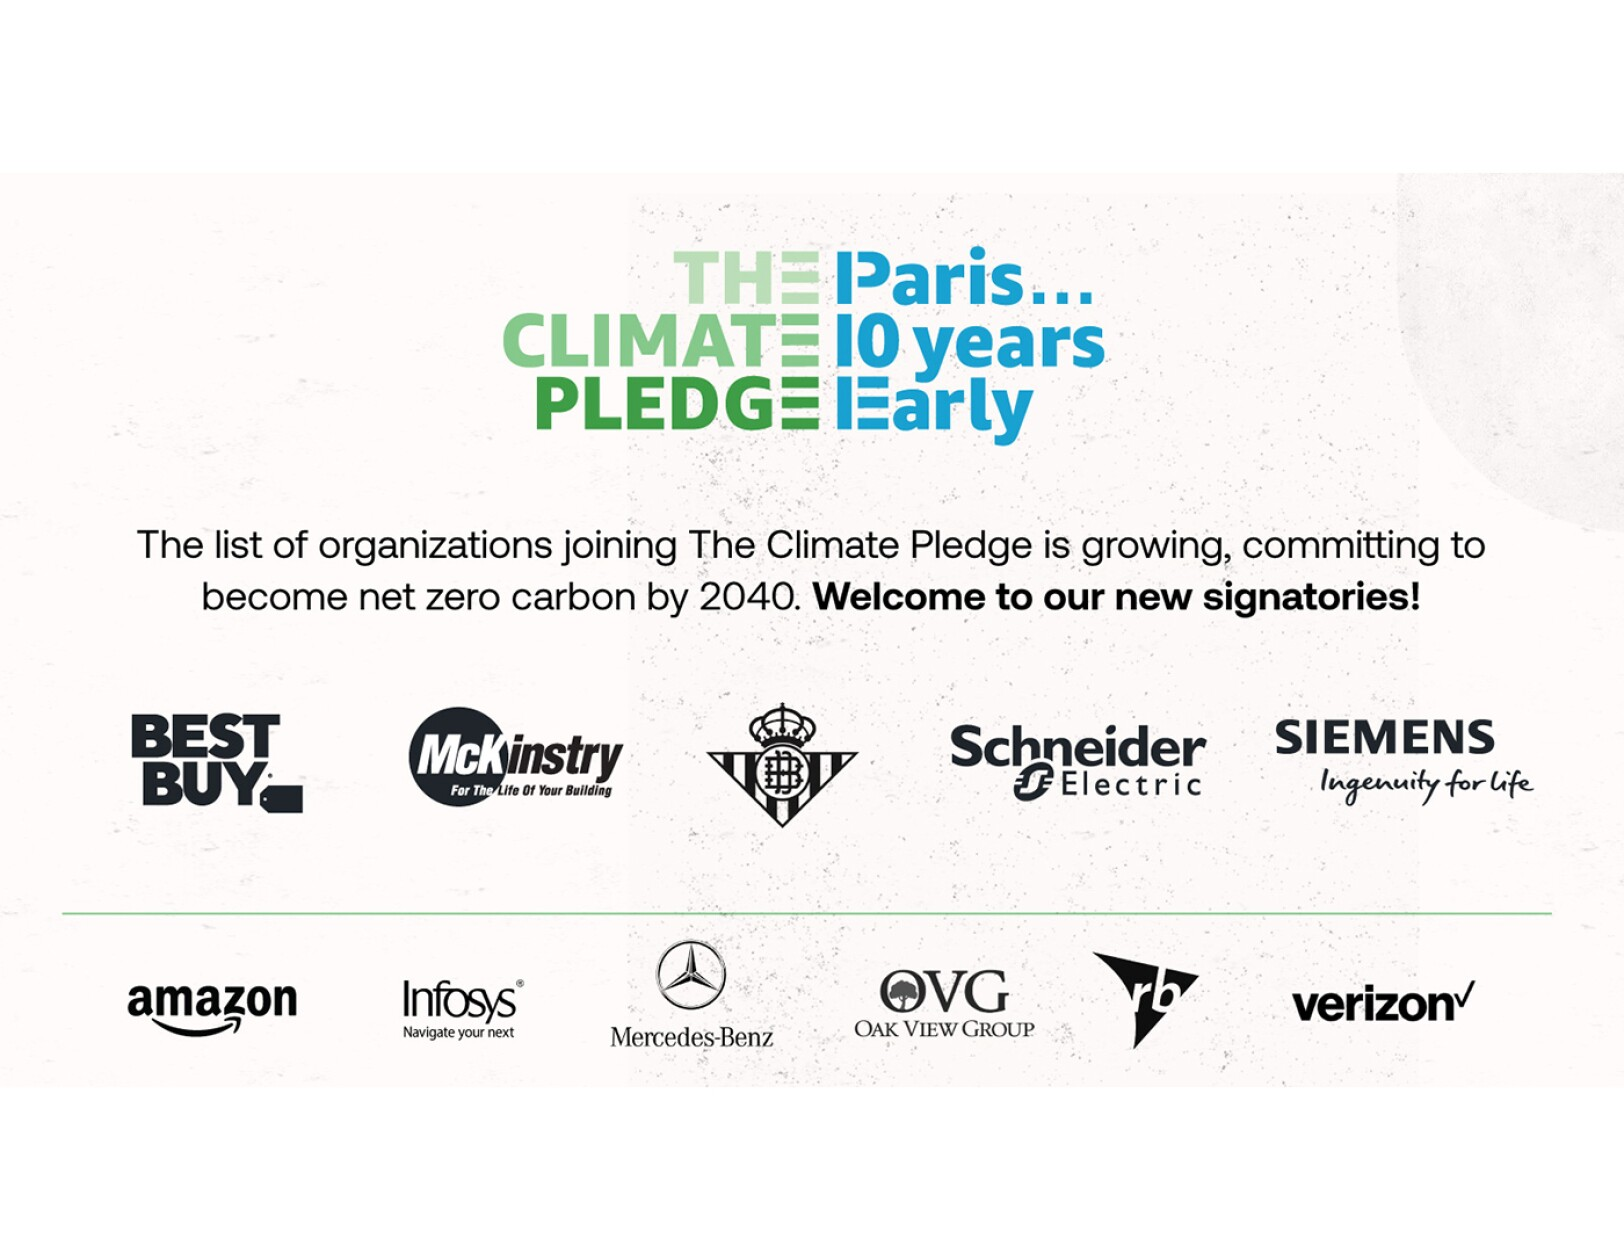 Best Buy, McKinstry, Real Betis, Schneider Electric, and Siemens sign The Climate Pledge